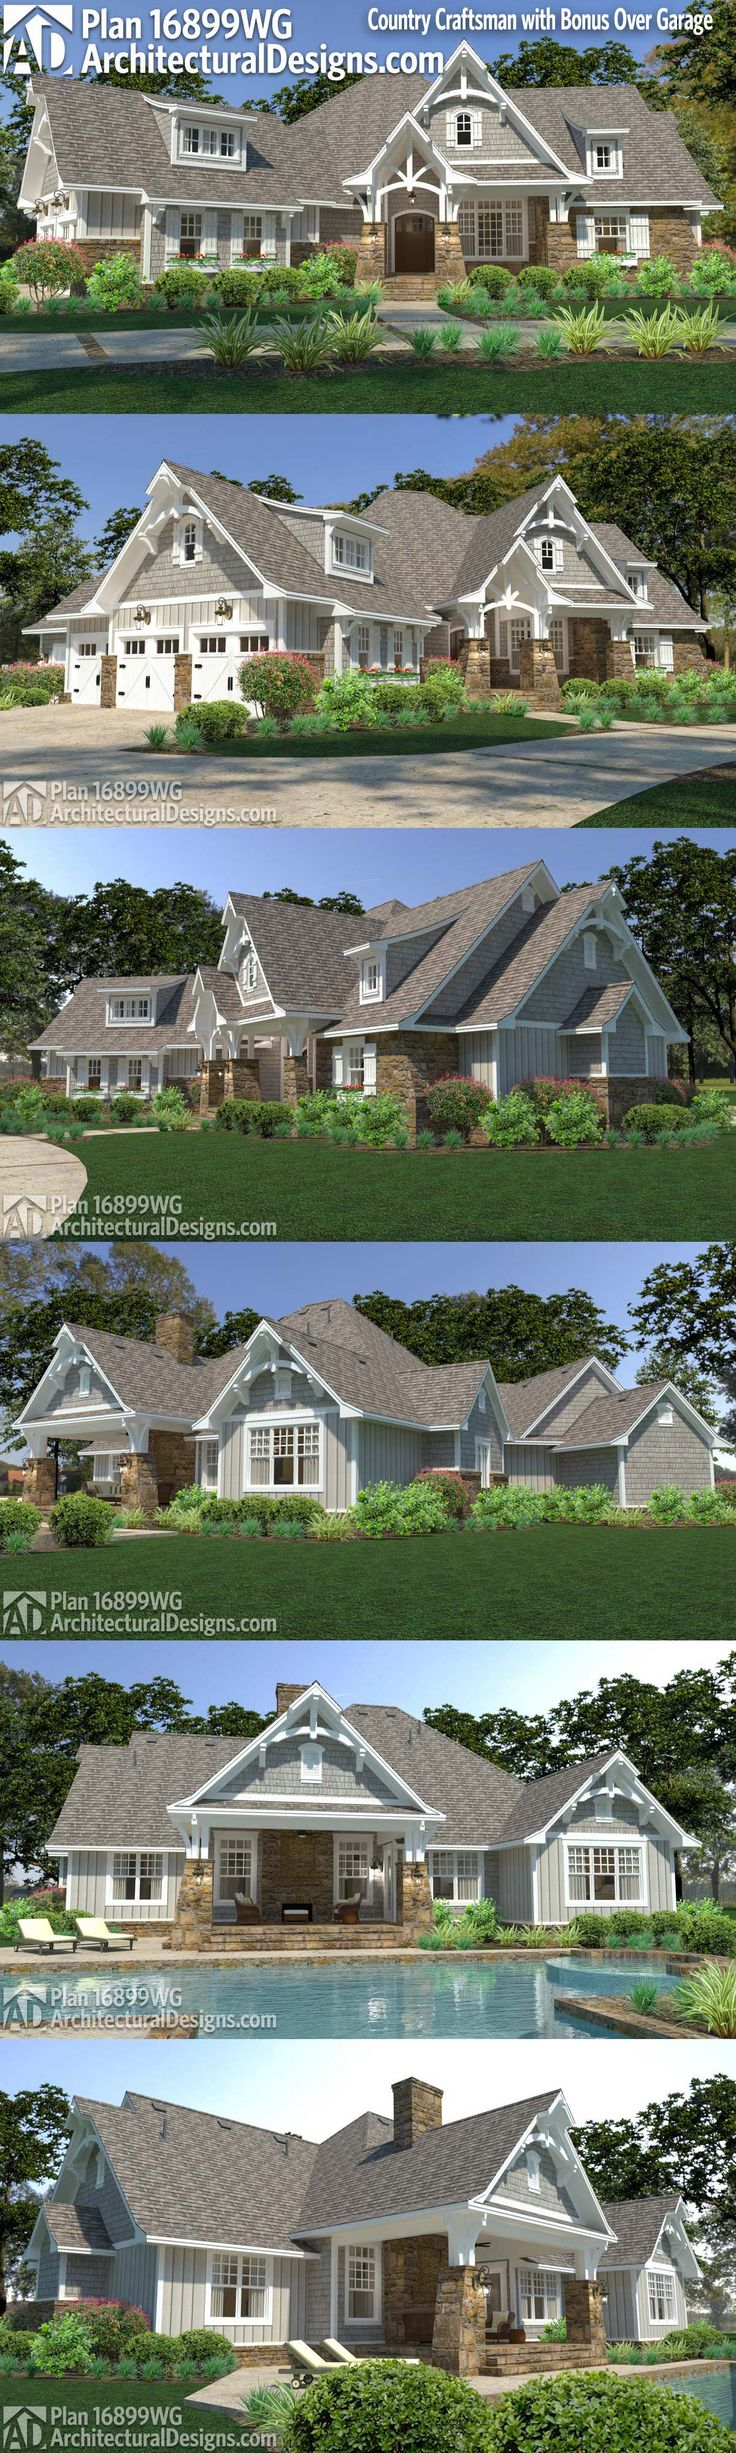 Introducing Architectural Designs Country Craftsman 16899WG! This exciting craftsman has elements of farmhouse design for some country charm. This plan gives you 3 beds and 3 baths in just over 3,000 sq ft heated living +650 sq ft bonus! Ready when you are. Where do YOU want to build? #16899WG #housedesign  #Home  #homedesign #architecture  #architectureDesign  #adhouseplans  #architecturaldesigns  #dreamhome  #newhome  #newconstruction  #houseplans